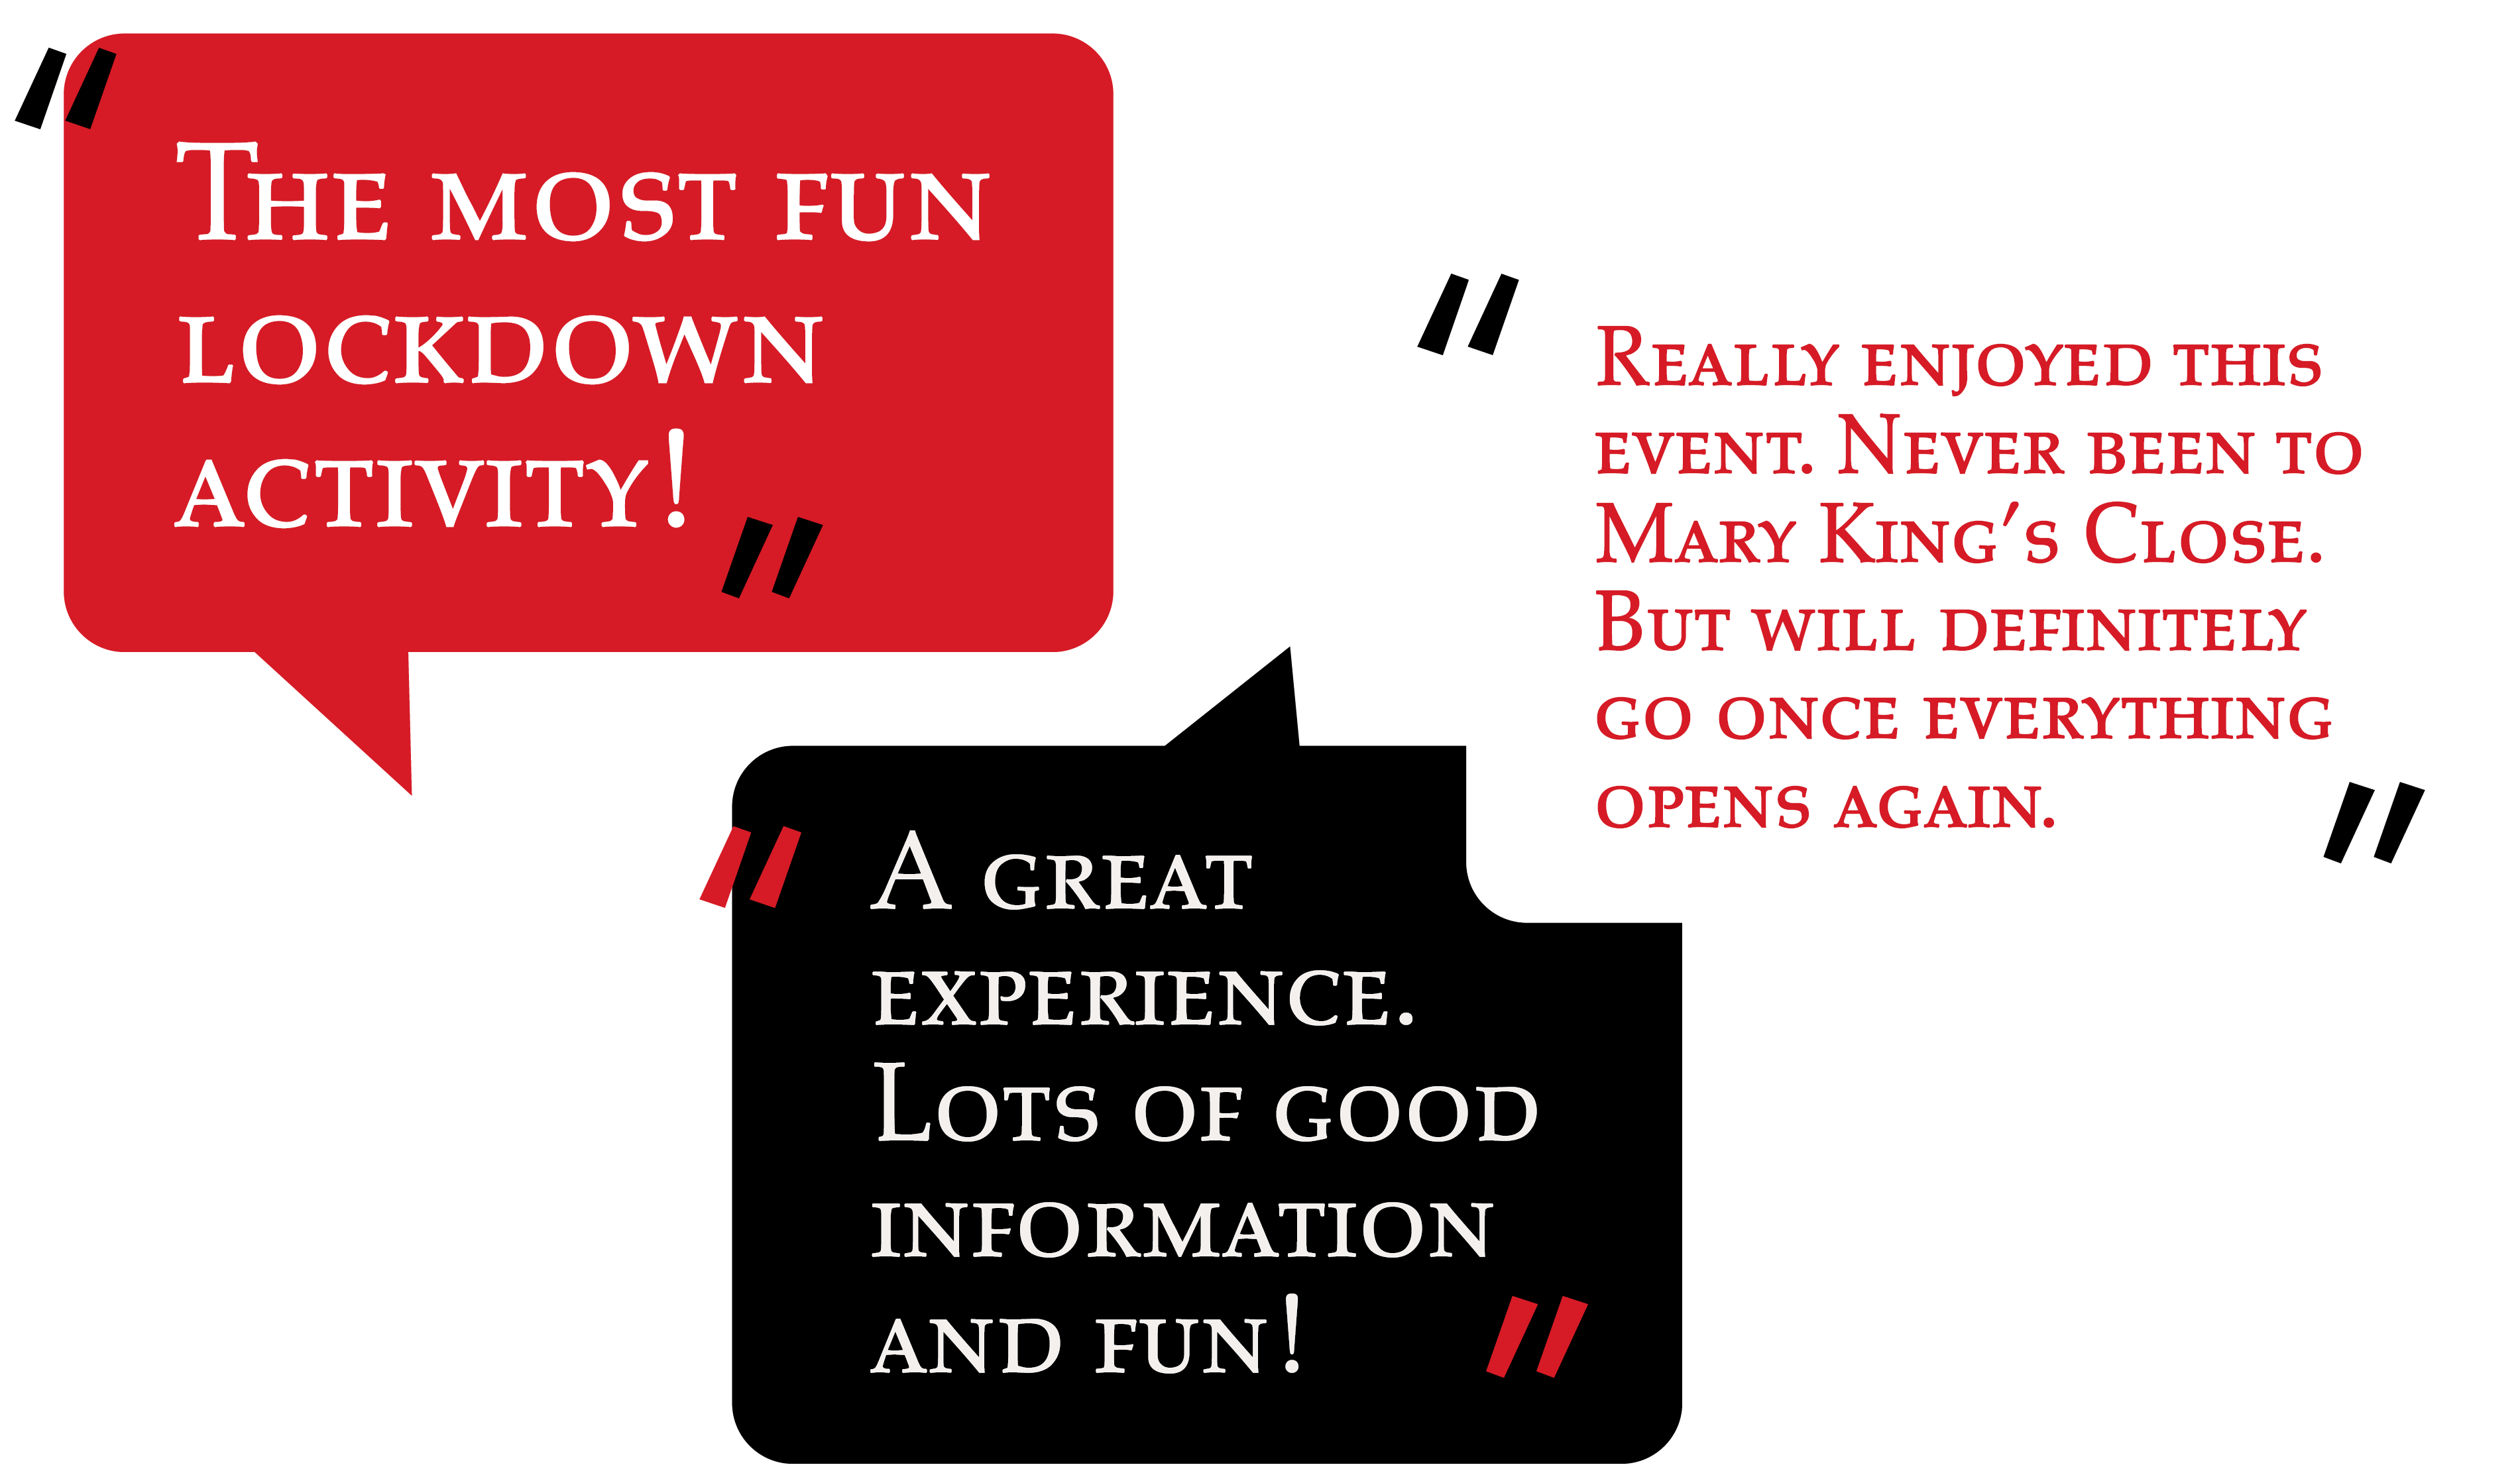 Virtual Tour Feedback - The Real Mary King's Close